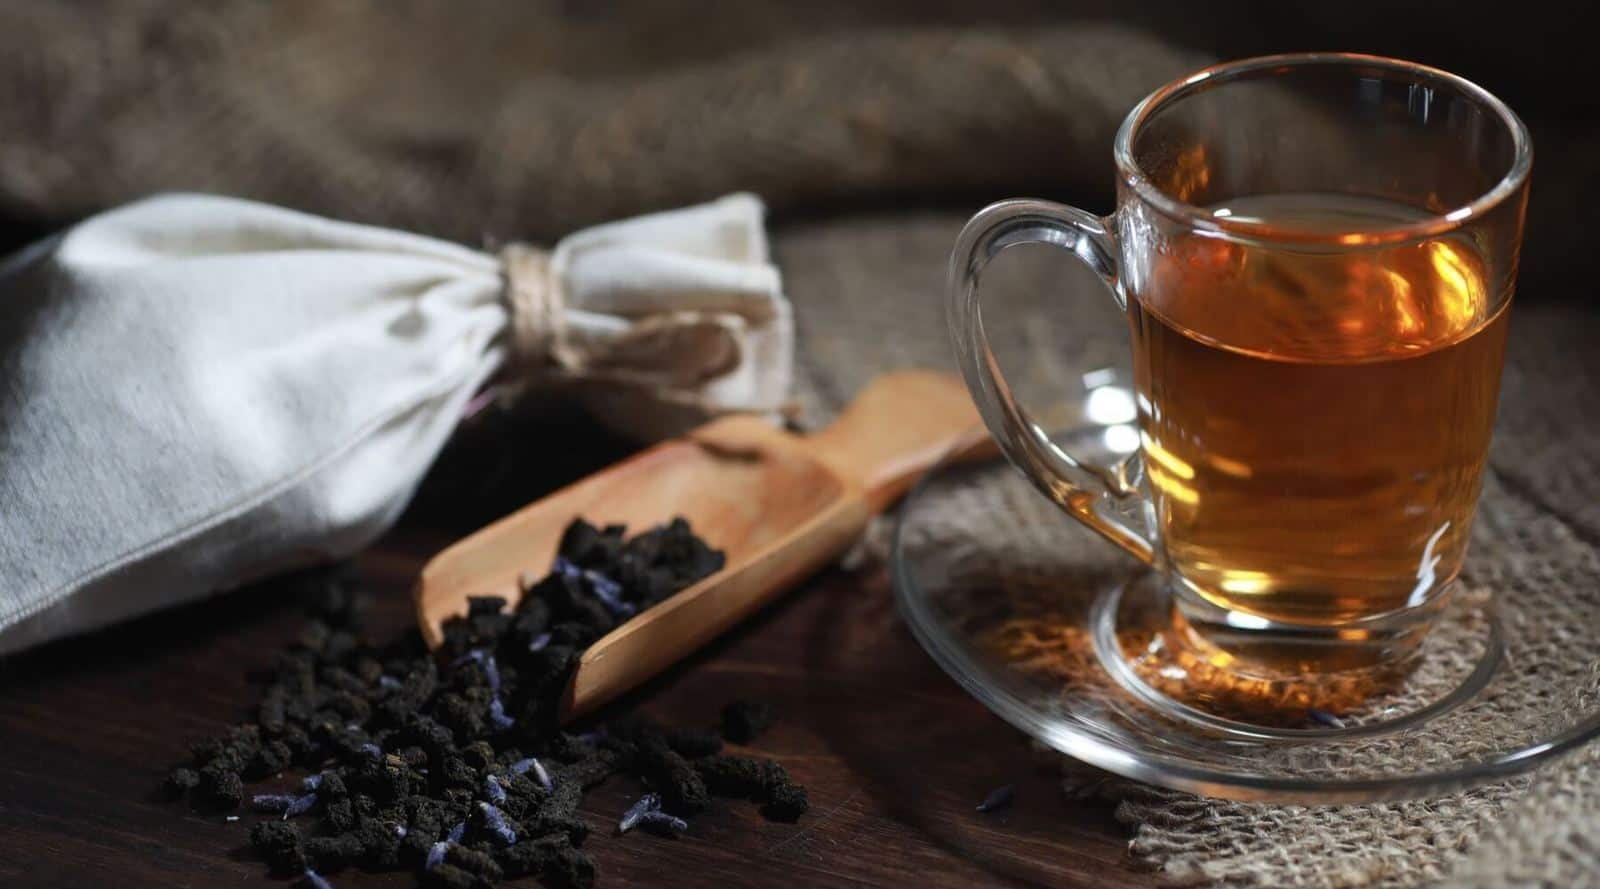 brewing tea: 5 common mistakes and how to avoid them